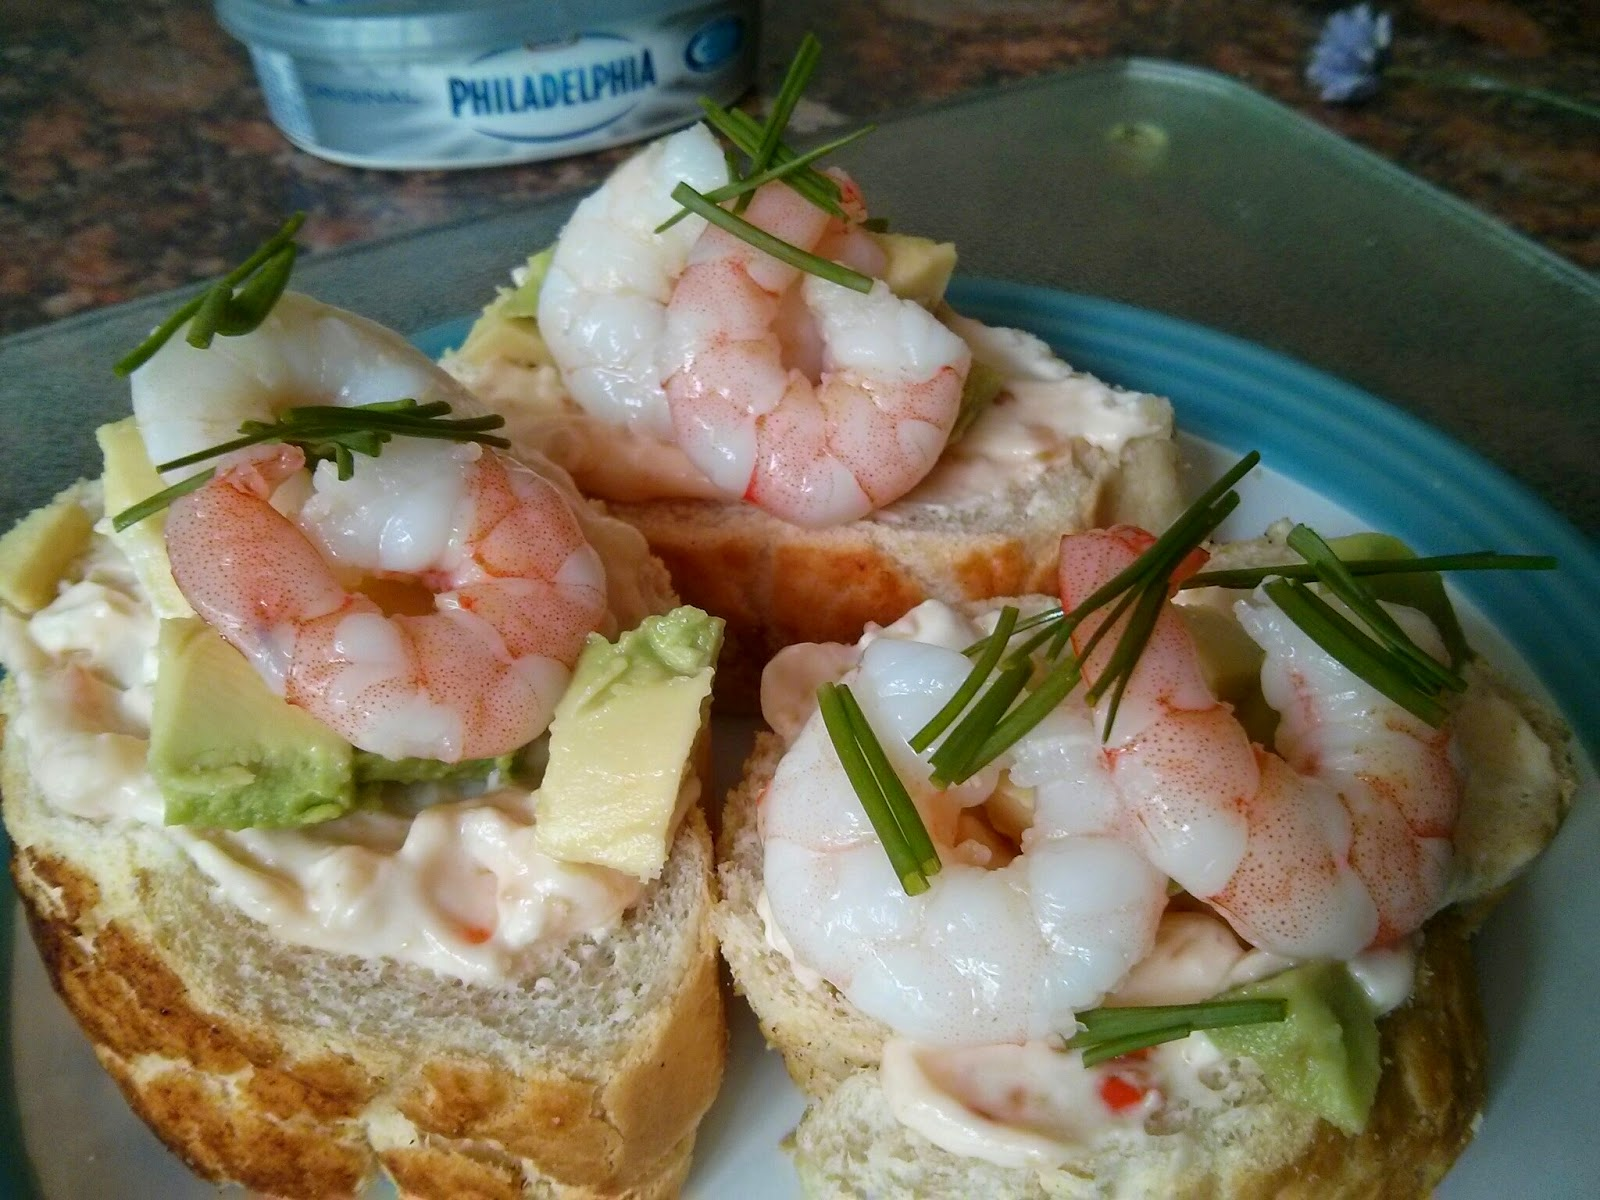 Baguette slices topped with Cream Cheese/Sweet Chill mix, Avocado and Prawns.